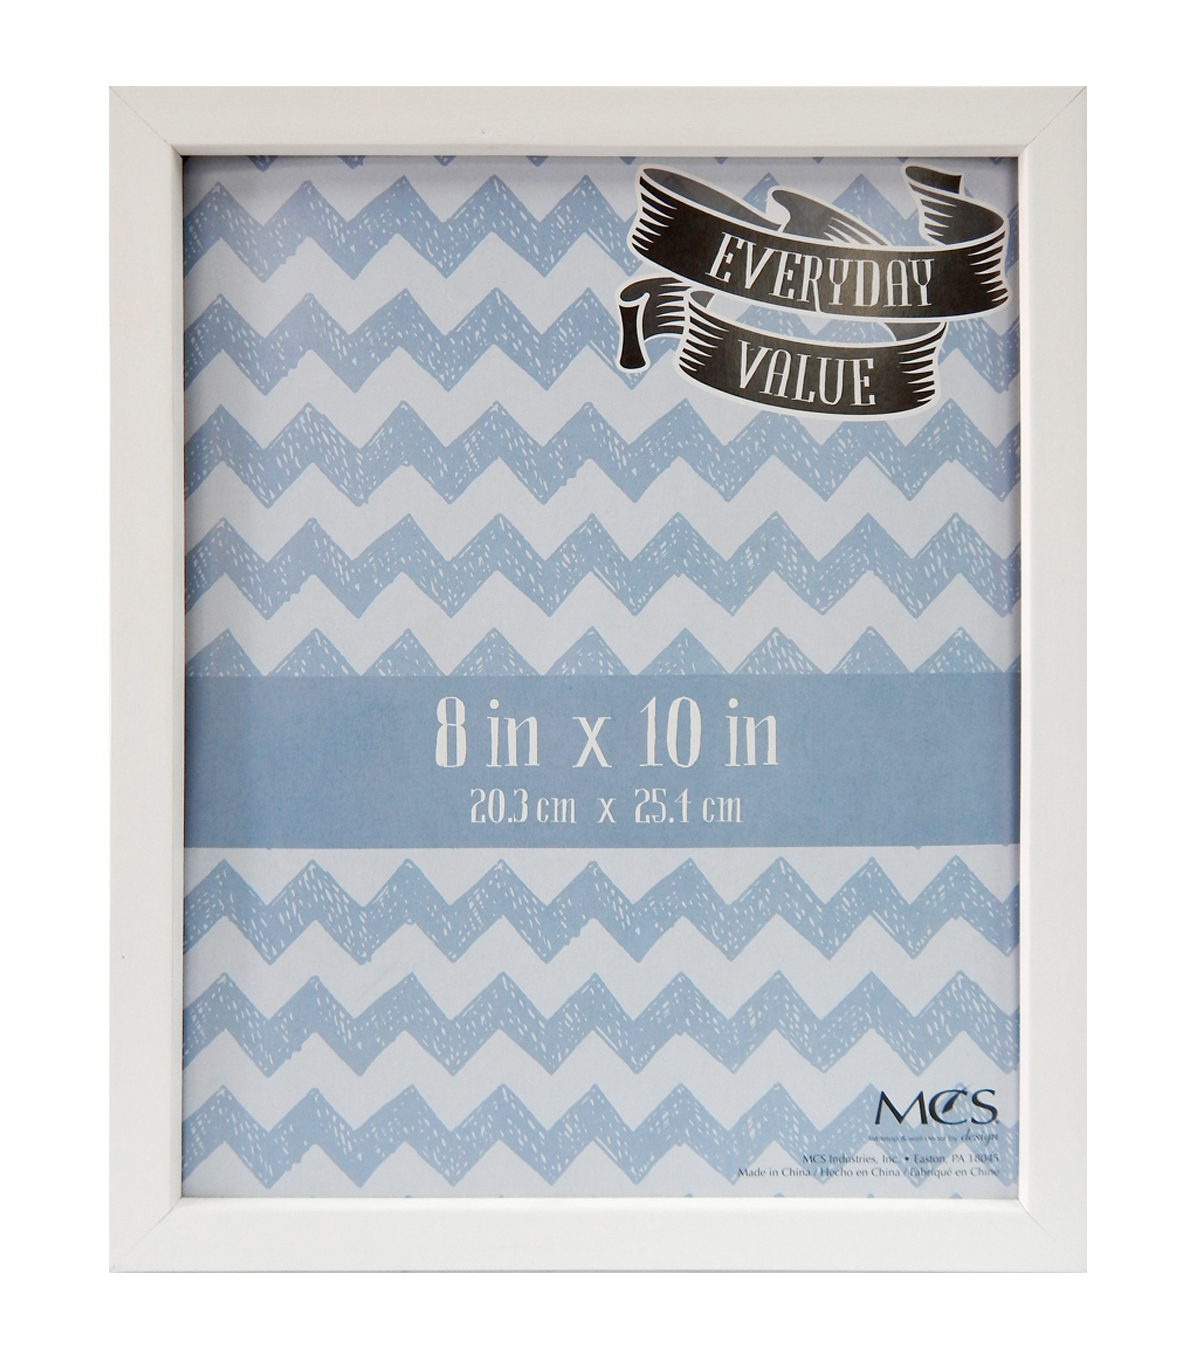 8X10 Everyday Value Frame White | JOANN